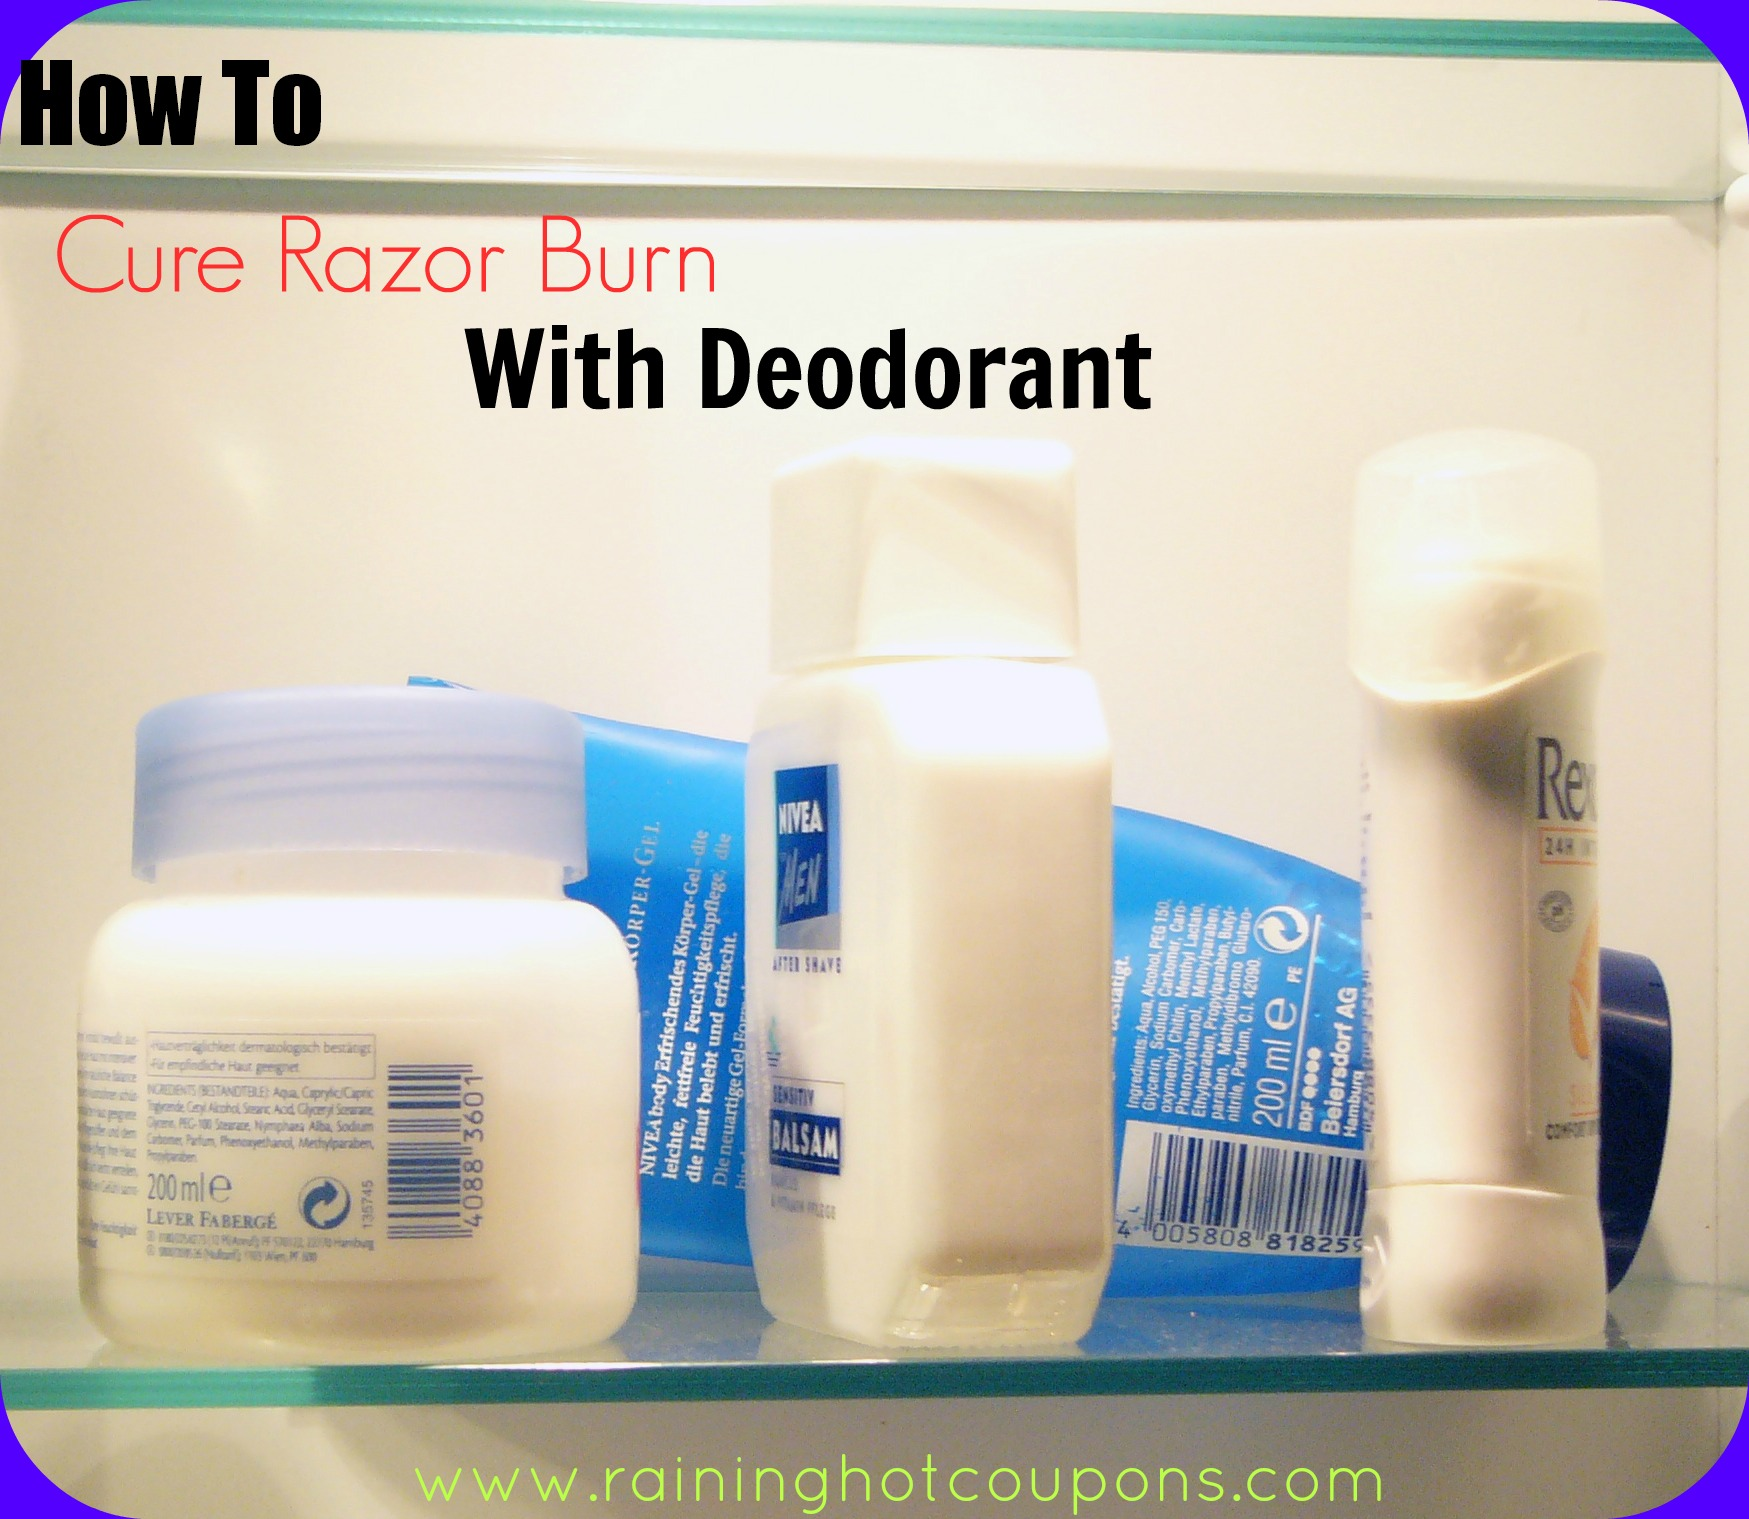 deorazorburn How To Cure Razor Burn With Deodorant